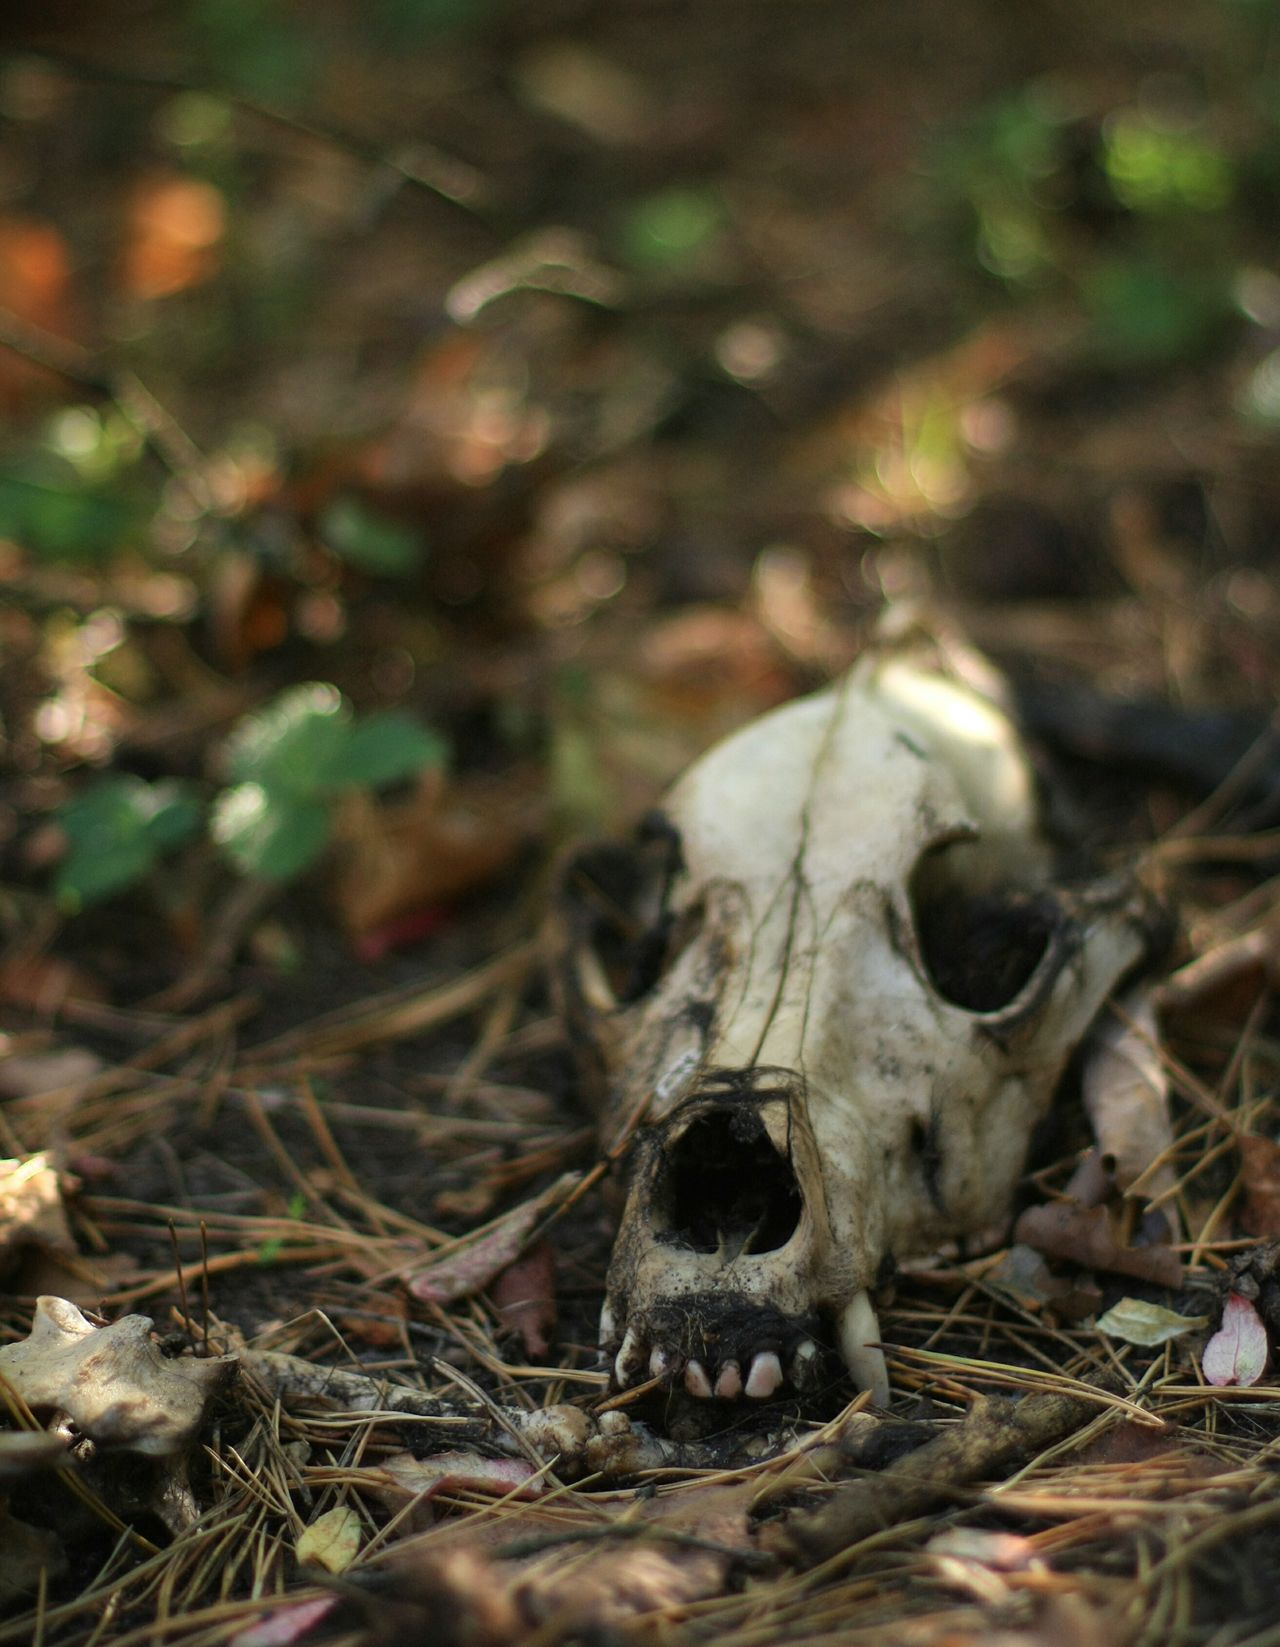 Animal Themes No People Close-up One Animal Domestic Animals Outdoors Day Mammal Nature Summer ☀ Summer Memories 🌄 Dead 50mm 1.4 Canonphotography Dead Animal Russia россия EyeEmNewHere Long Goodbye